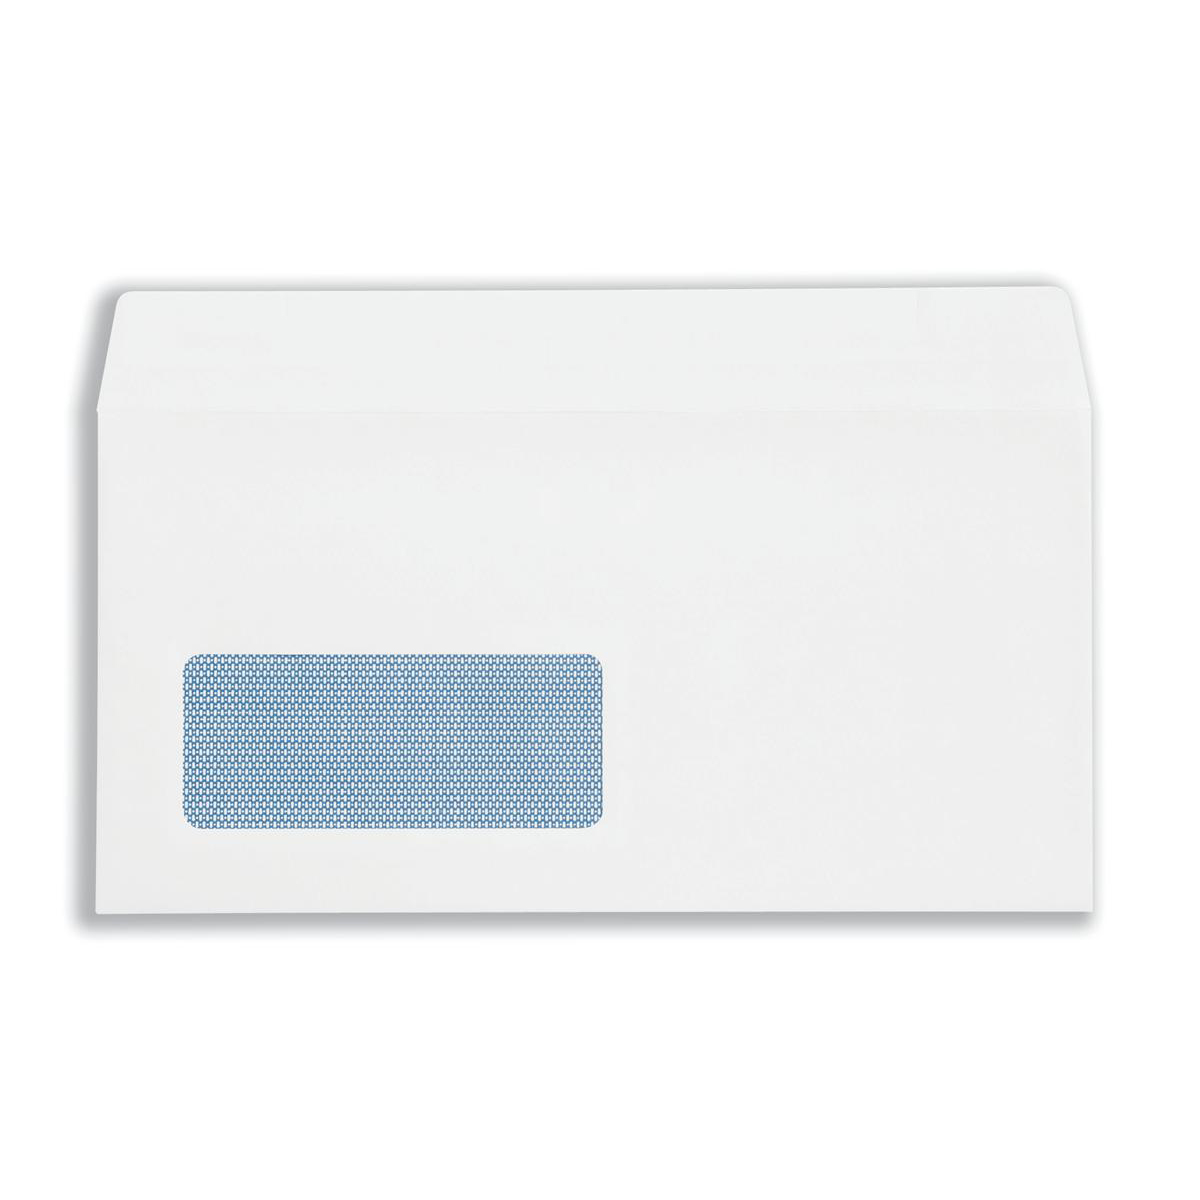 Plus Fabric Envelopes Wallet Self Seal Window 120gsm DL 110x220mm White Ref C23370 Pack 250